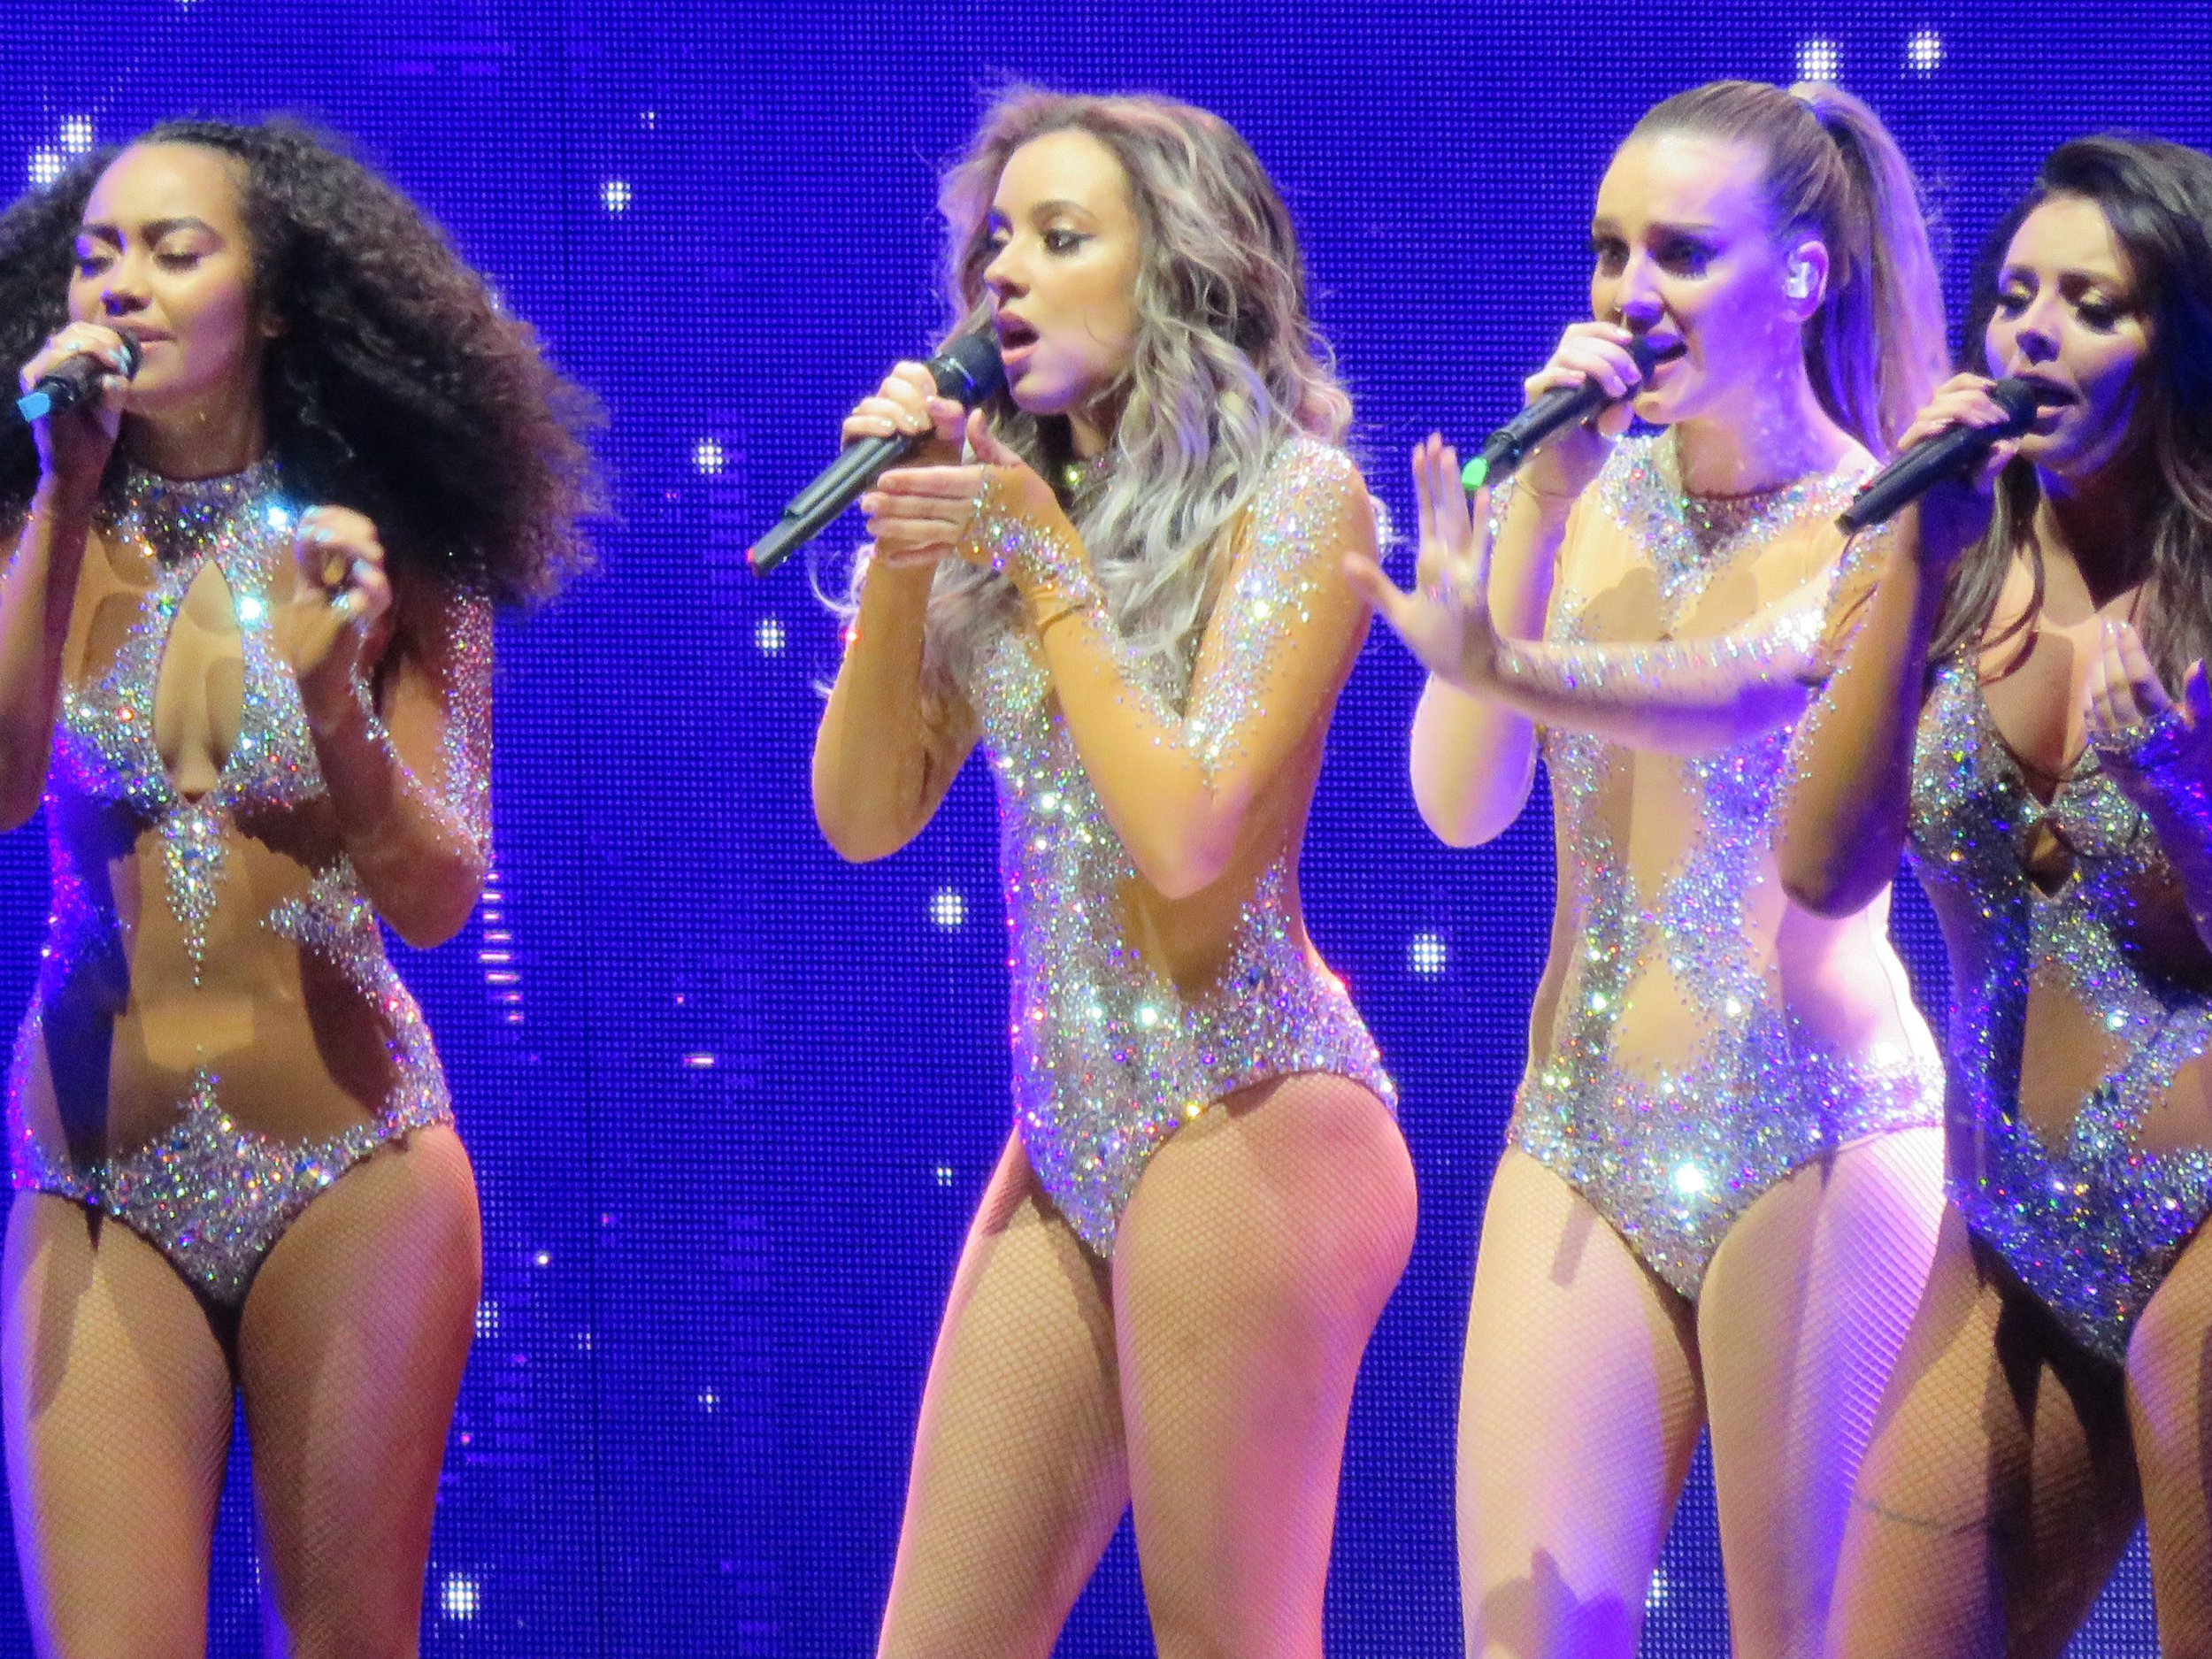 27.March.2016 - London - UK Little Mix, Perrie Edwards, Leigh Anne Pinnock, Jesy Nelson and Jade Thirlwall, seen performing live at the O2 arena in London during their Get Weird Tour! BYLINE MUST READ : Belcher/XPOSUREPHOTOS.COM PLEASE CREDIT AS PER BYLINE *UK CLIENTS MUST CALL PRIOR TO TV OR ONLINE USAGE PLEASE TELEPHONE 020 8344 2007